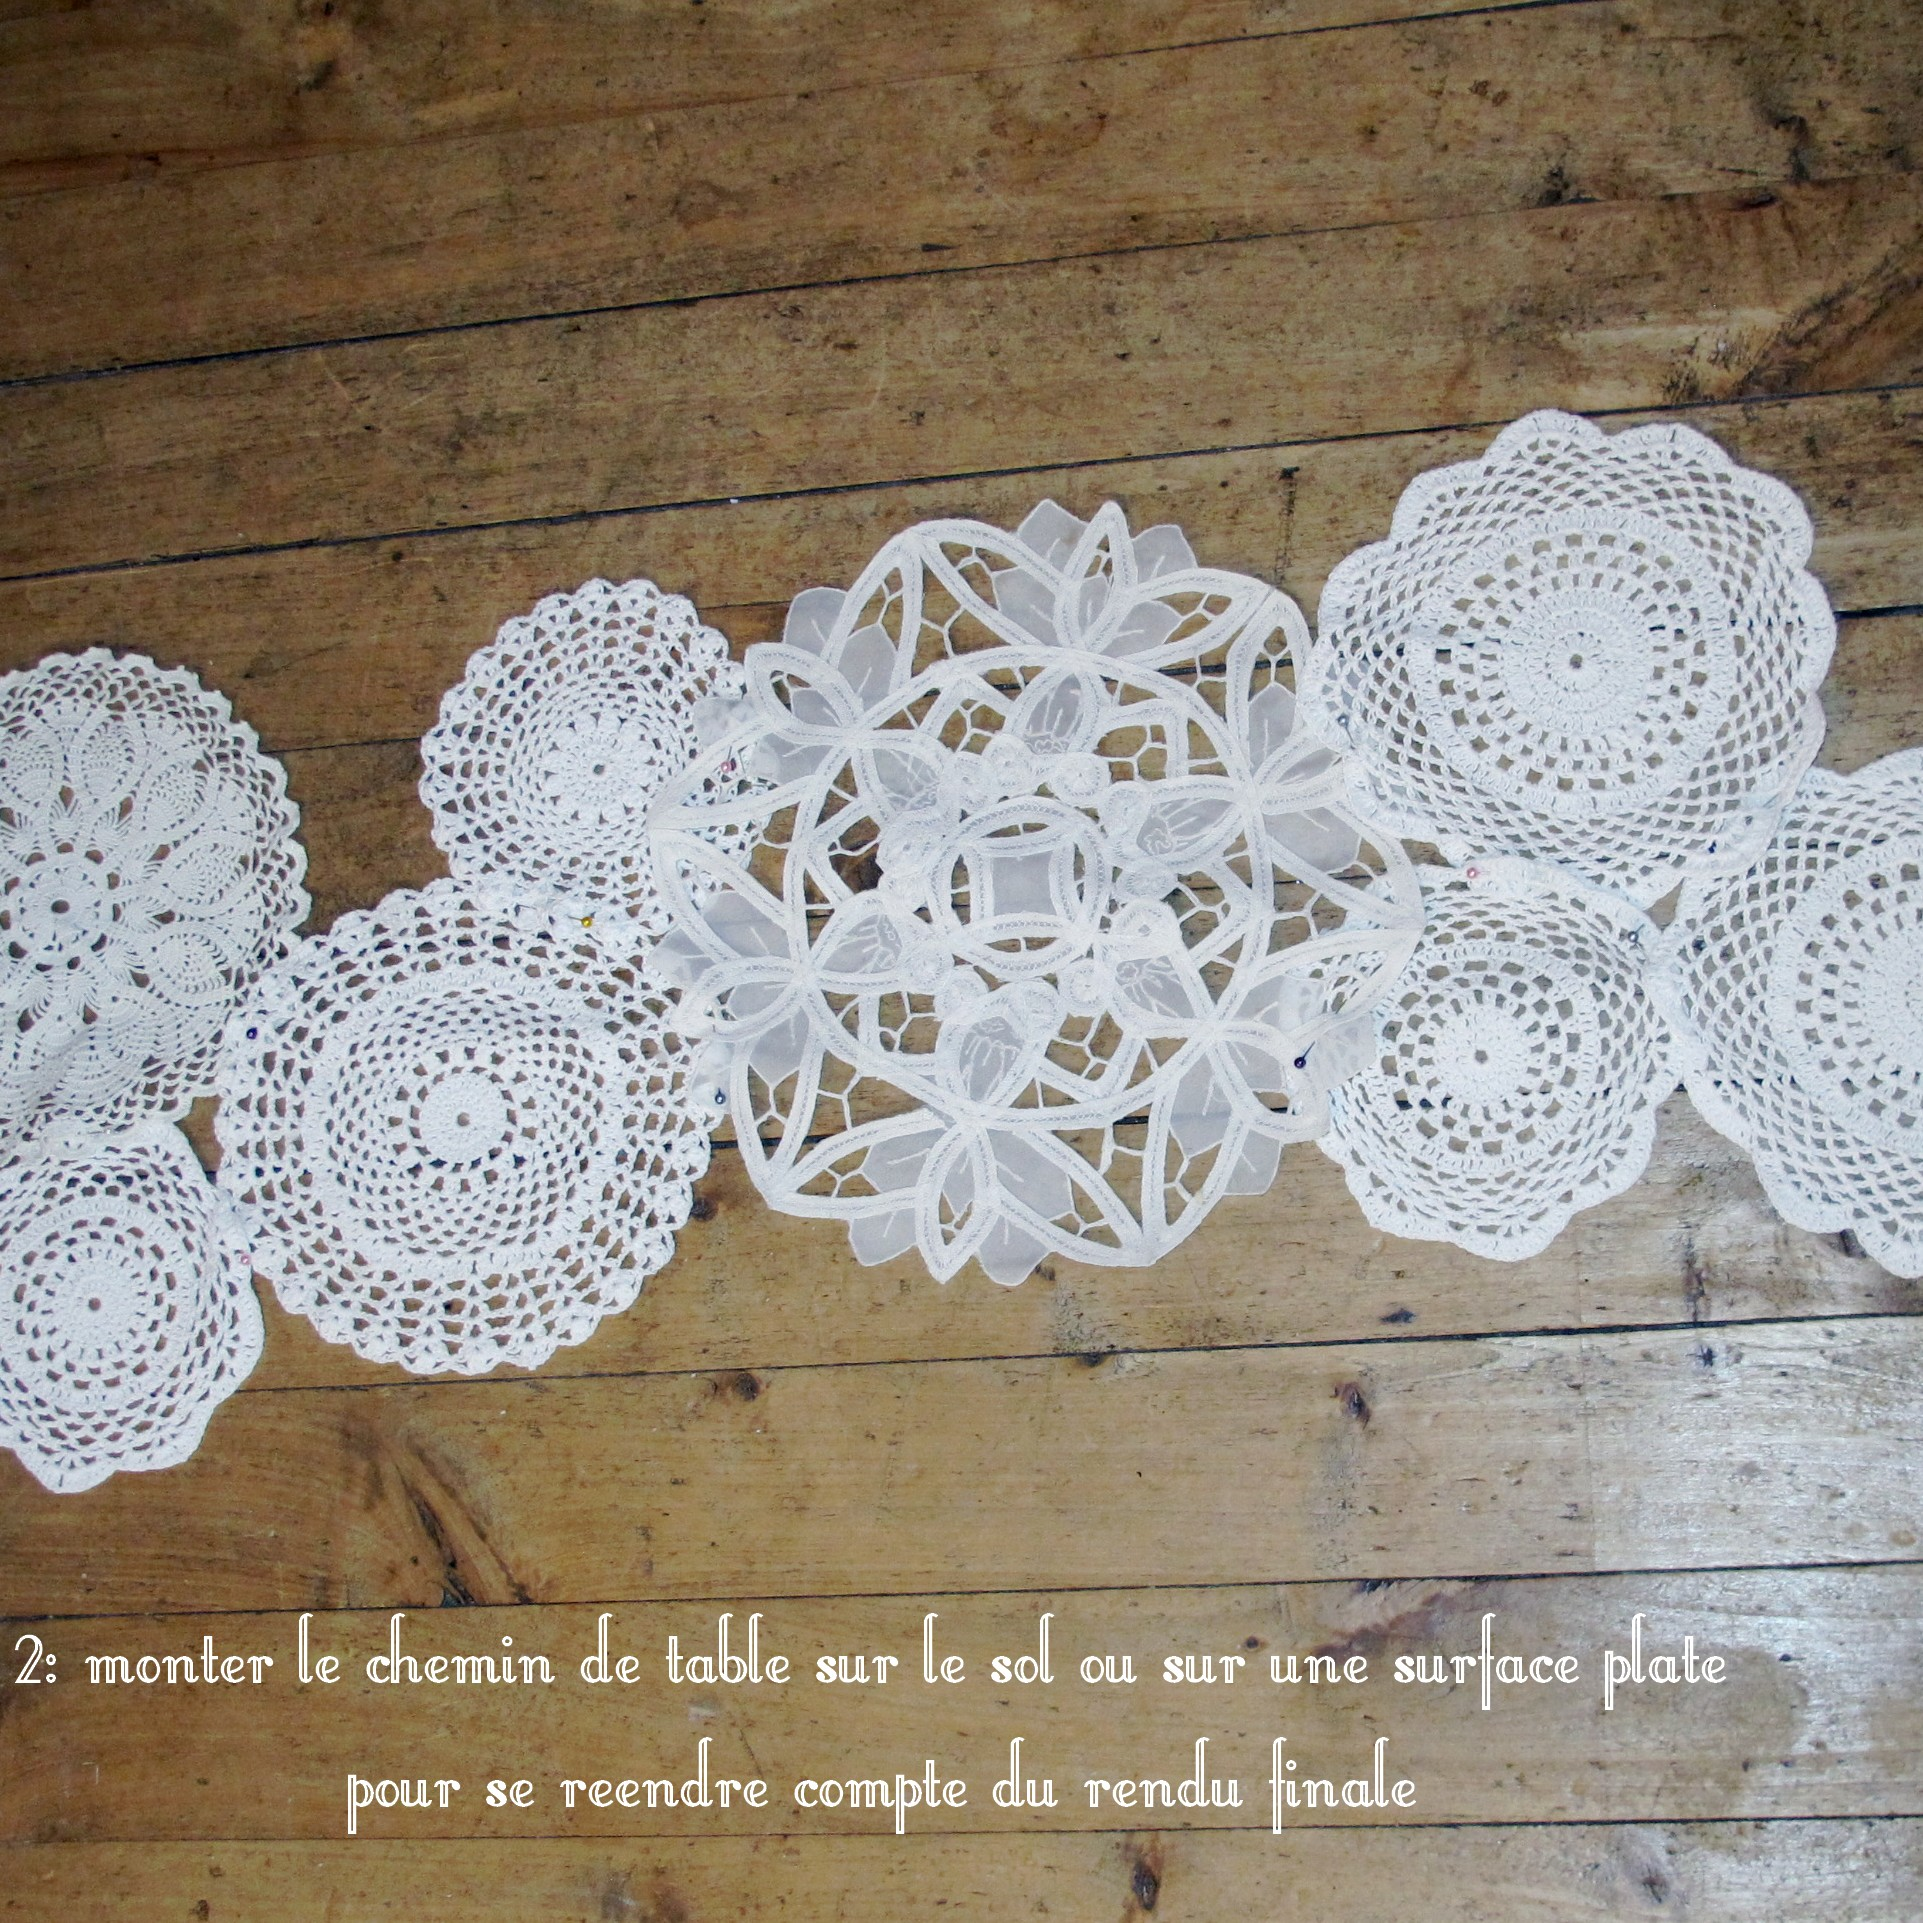 Diy Chemin De Table Napperon Mamzel Tutu Le Blog